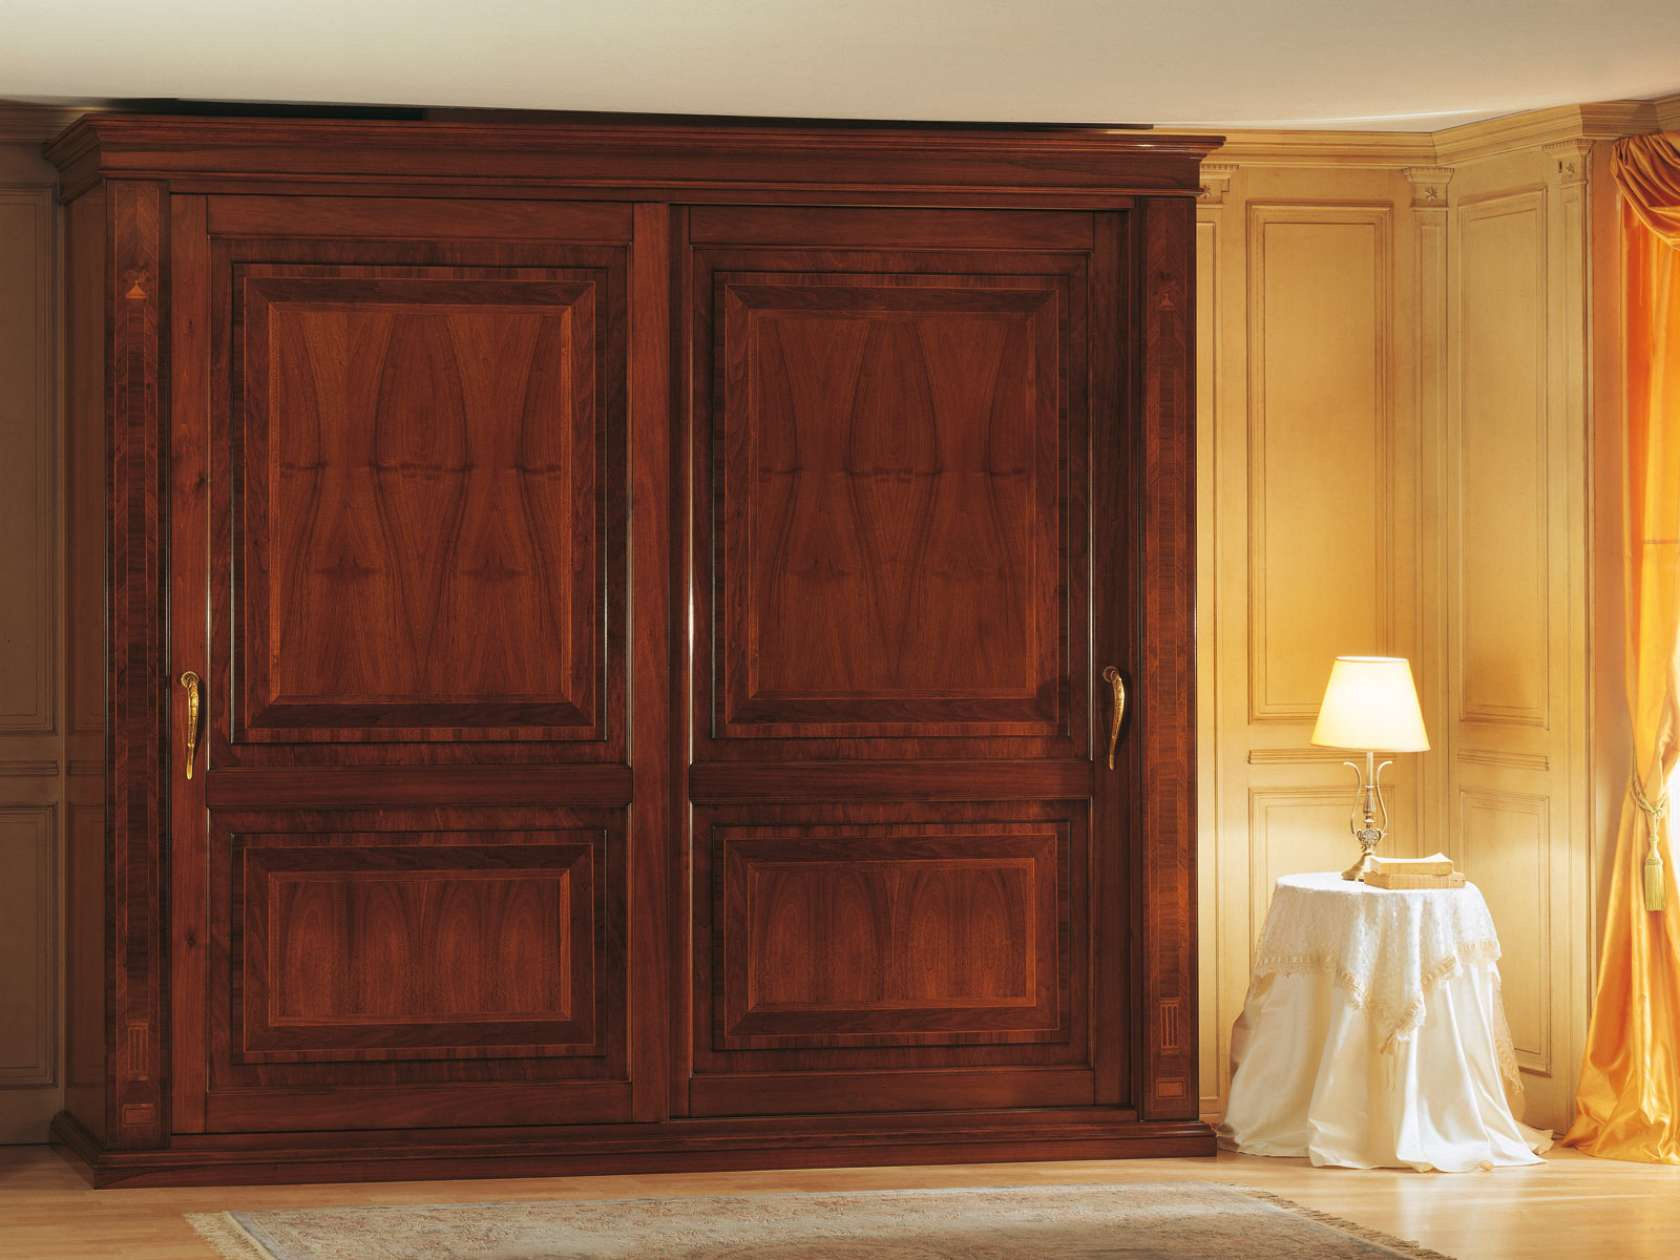 19th Century French Bedroom Wardrobe With Two Doors Inlaid Vimercati Classic Furniture